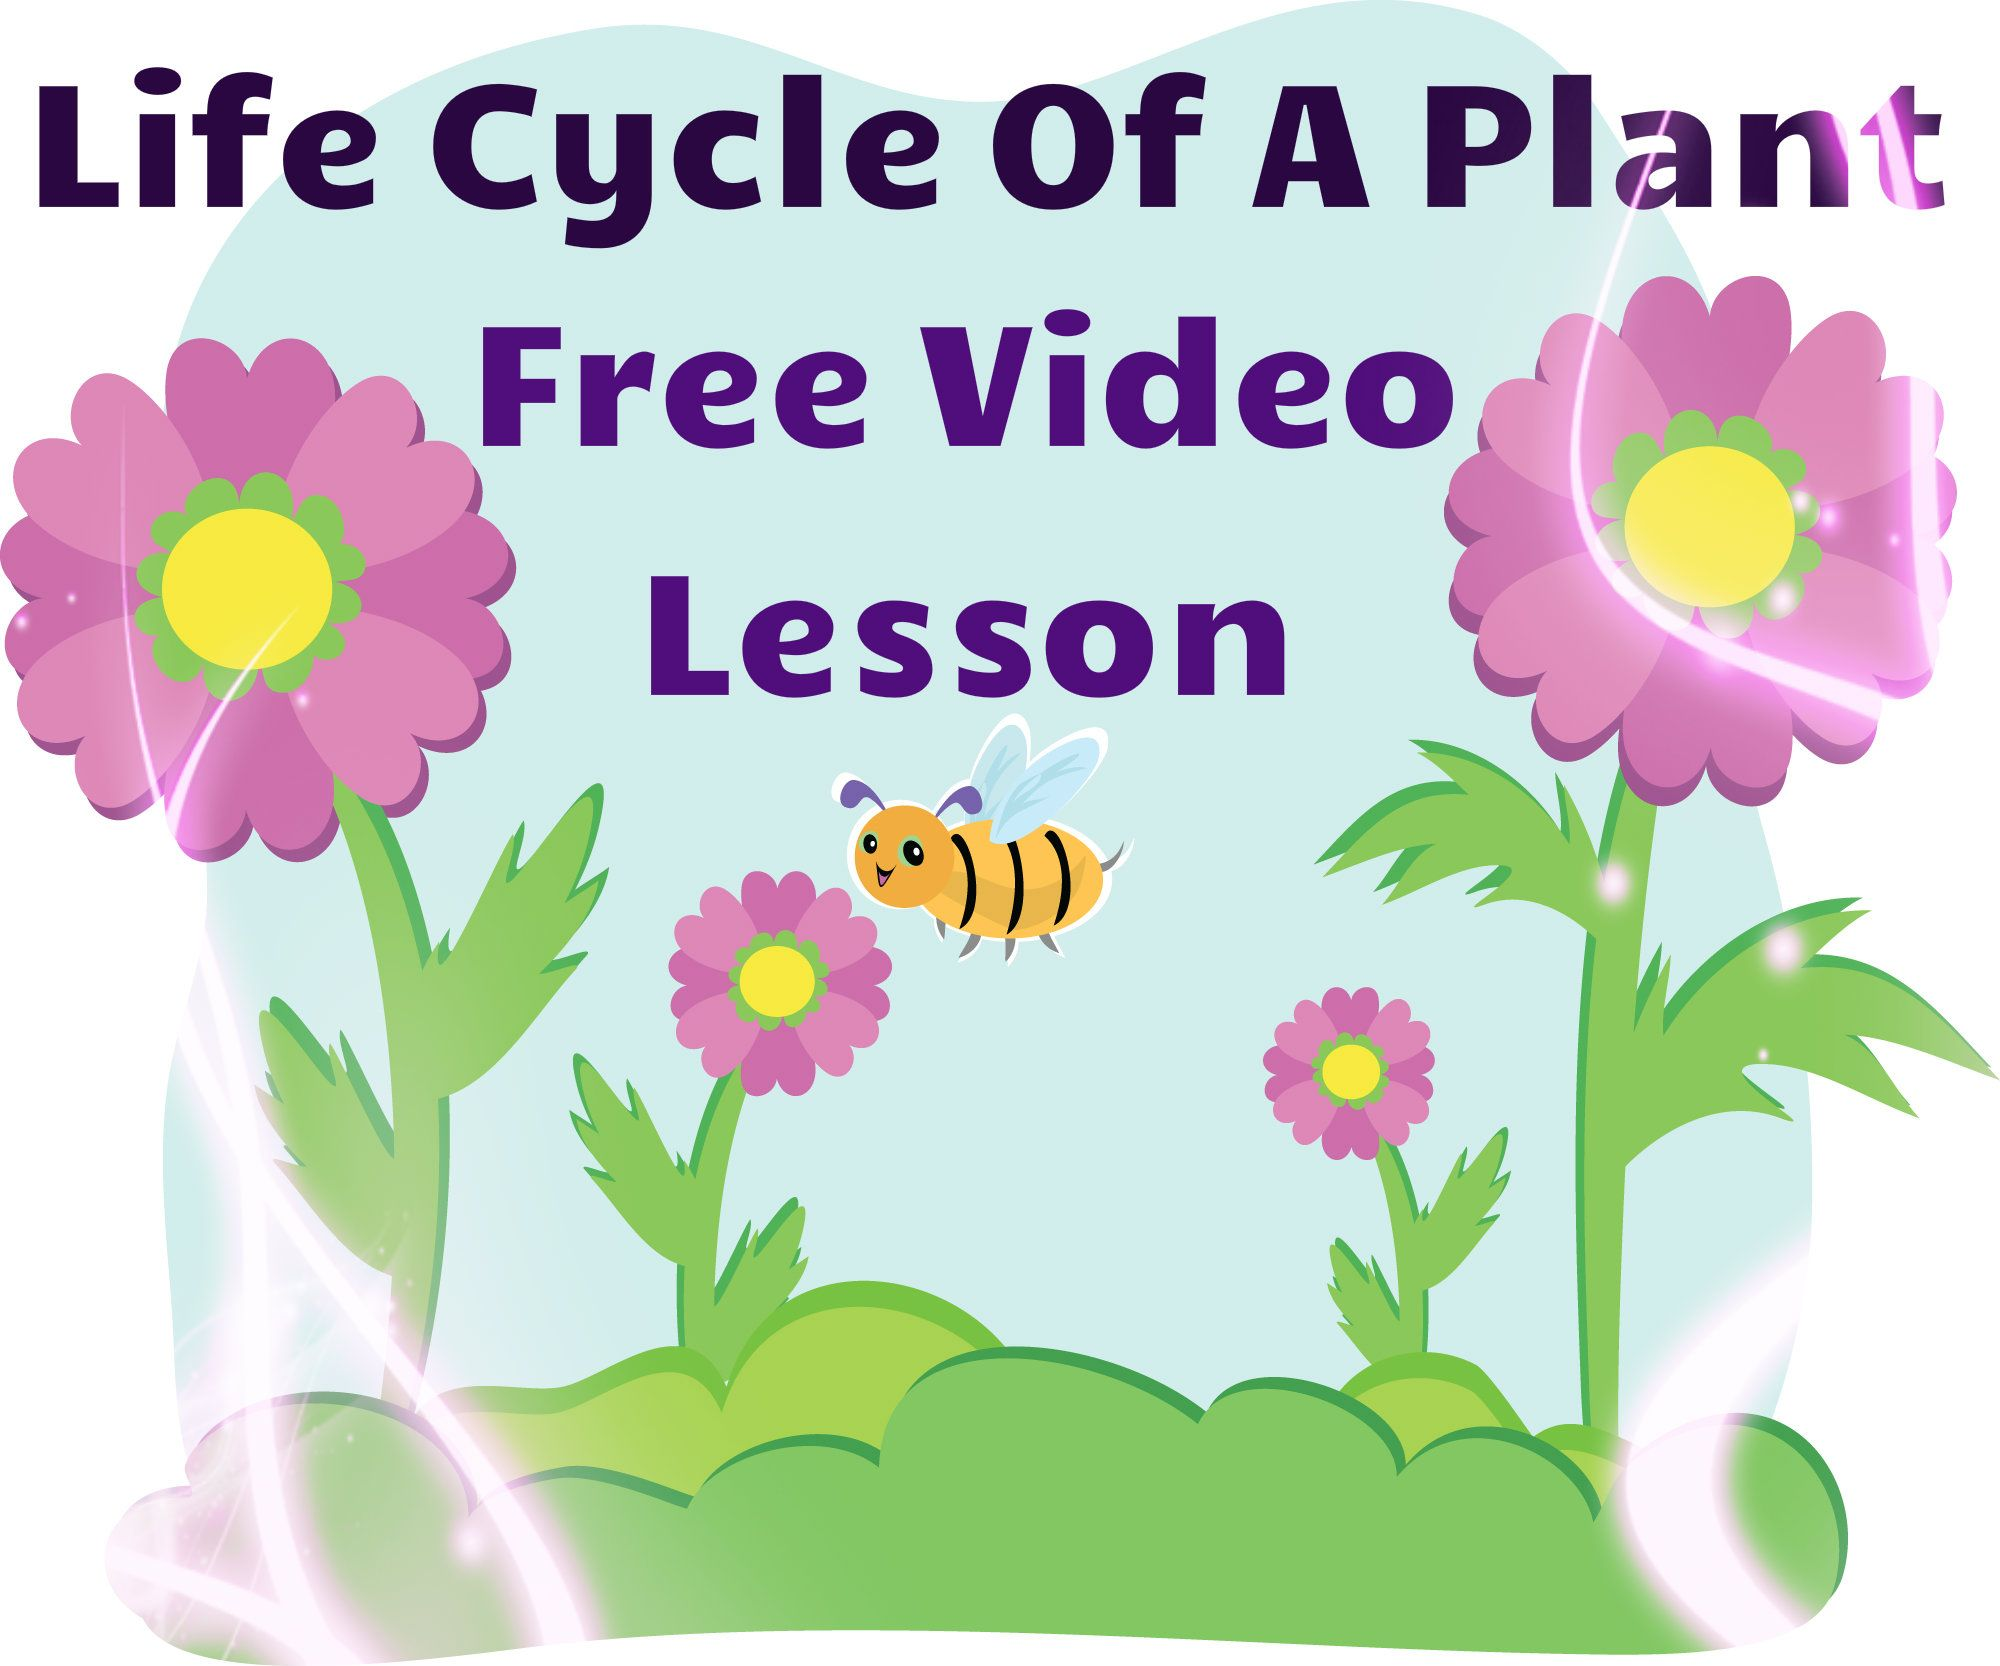 This Is A Wonderful Video To Teach Children About Plant